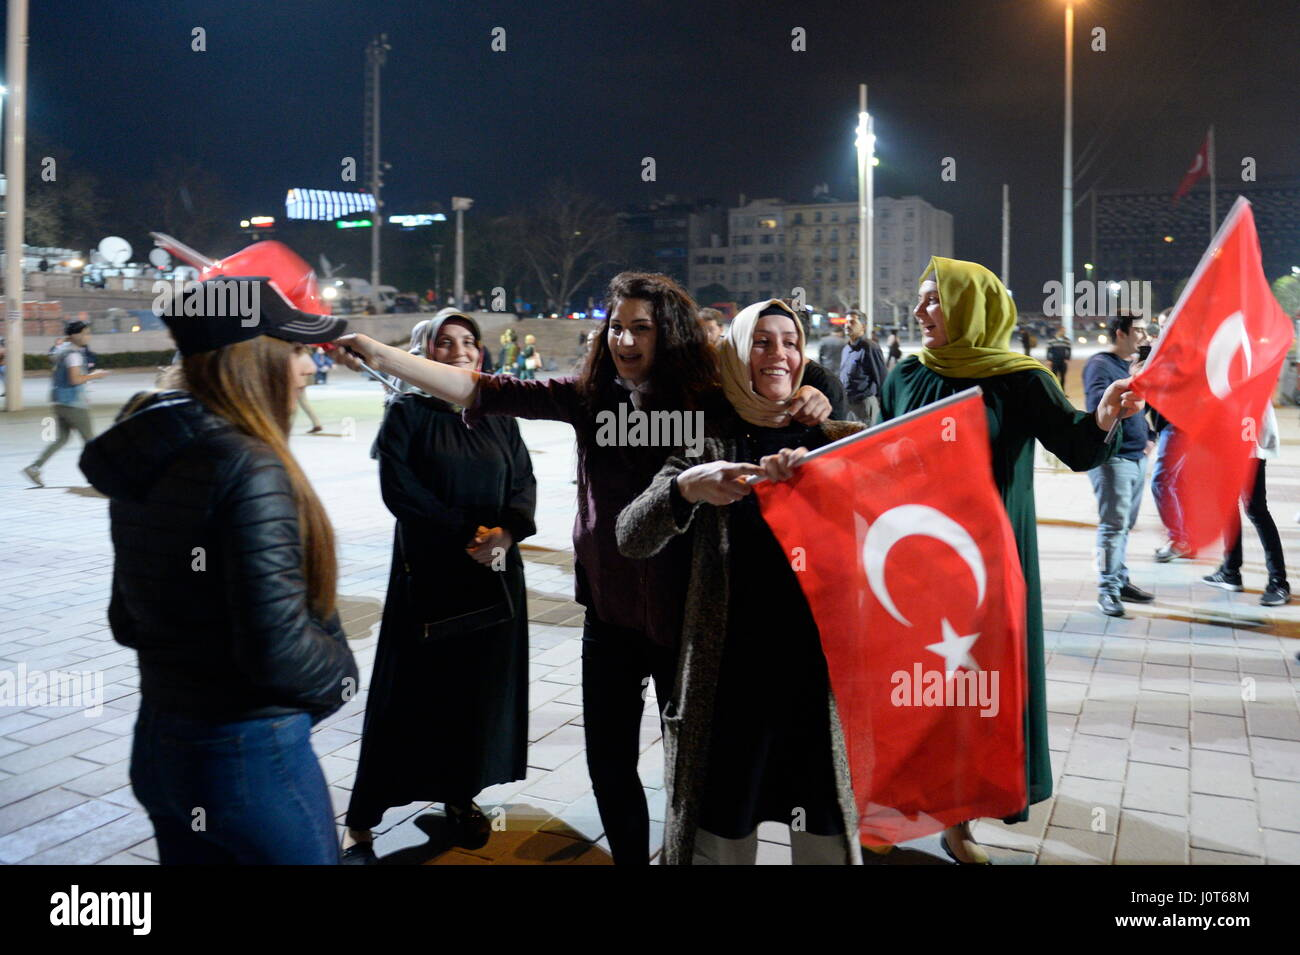 Istanbul, Turkey. 16th Apr, 2017. Enumeration rate according to TV stations over 98 percent of votes: 51.4 percent - Stock Image